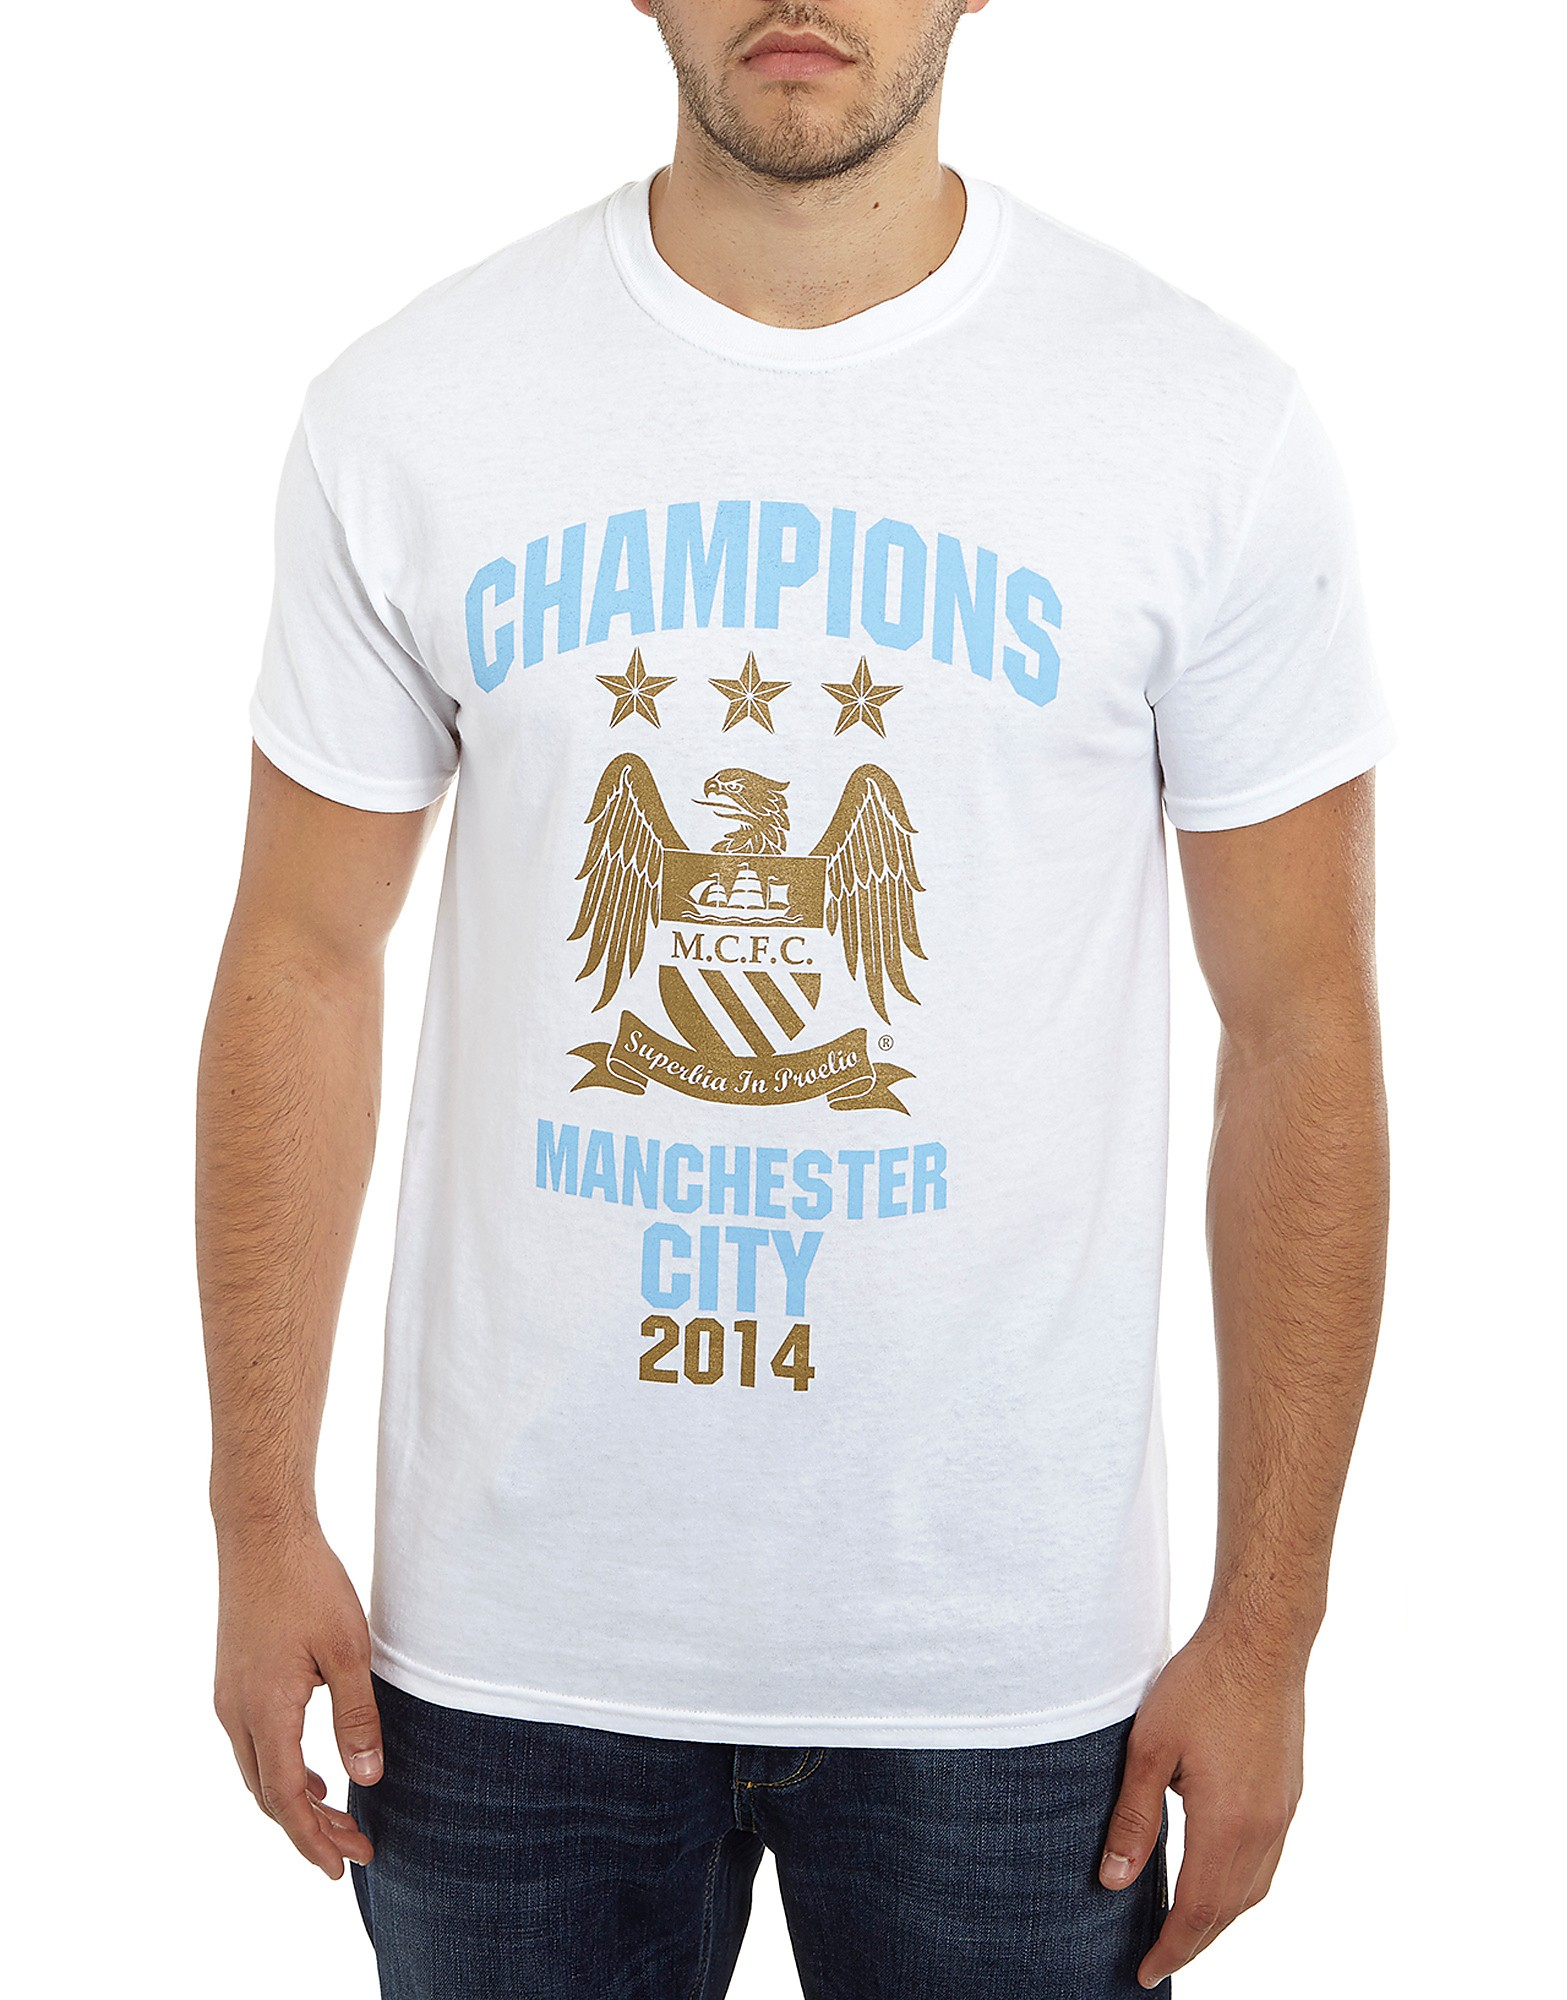 Official Team Manchester City 2014 Champions T-Shirt